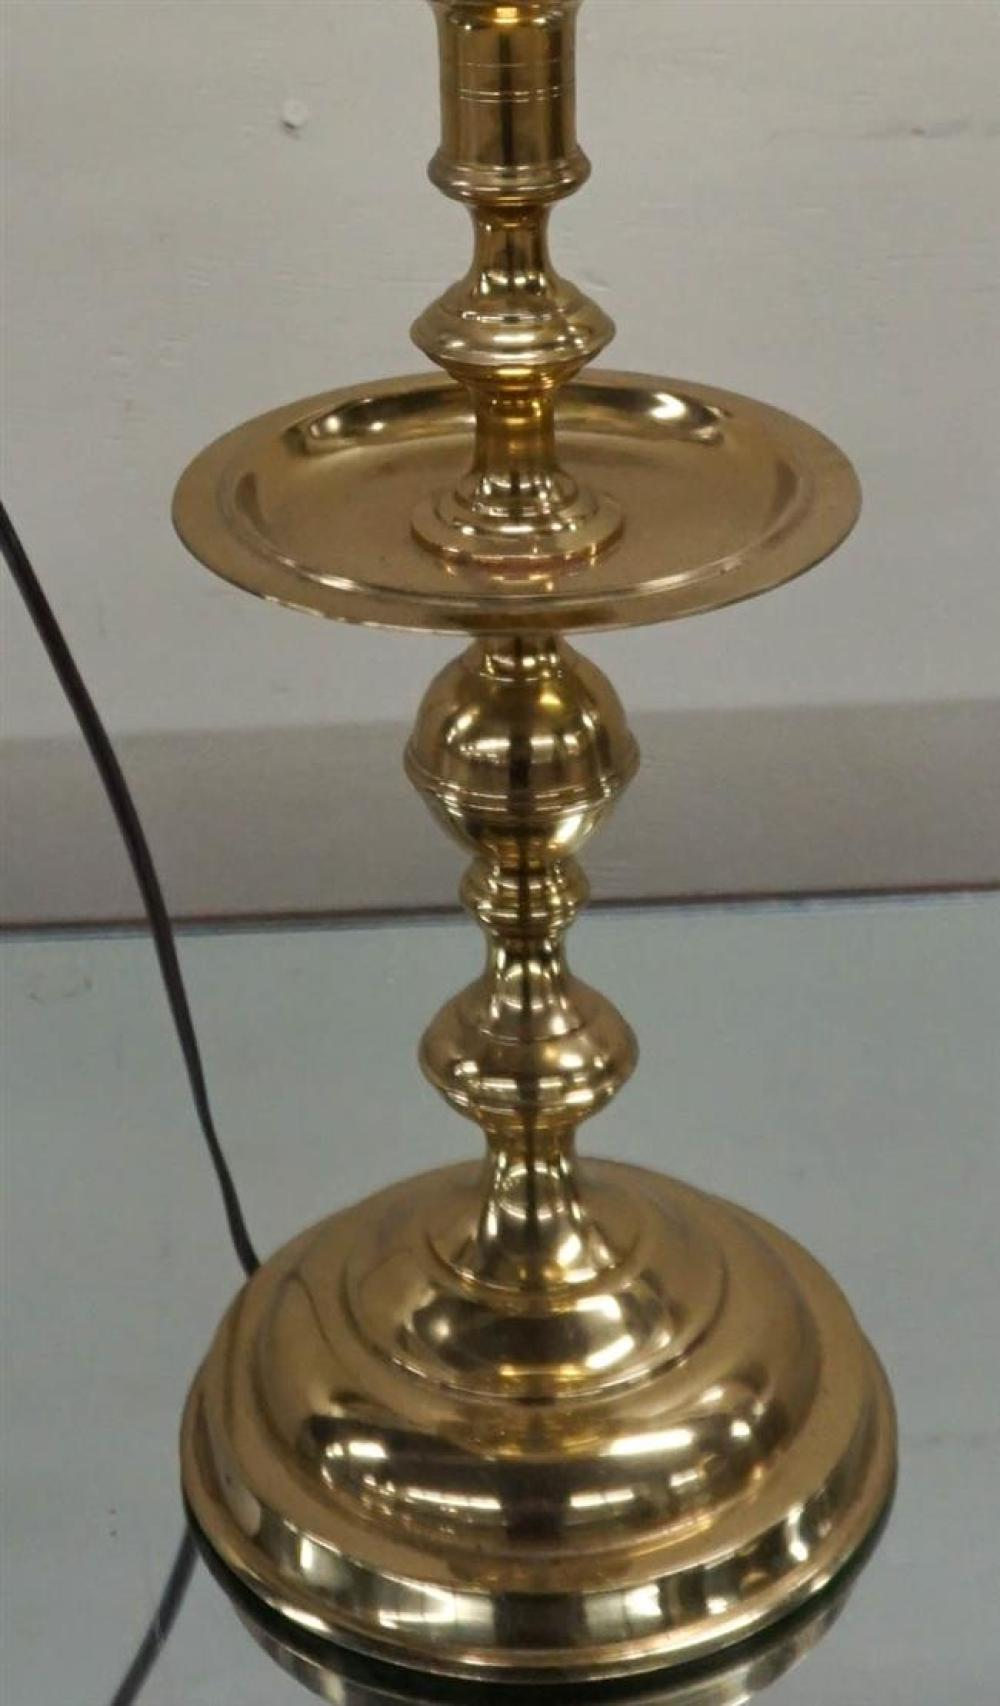 Brass Candlestick mounted as Lamp, Height overall: 30 in